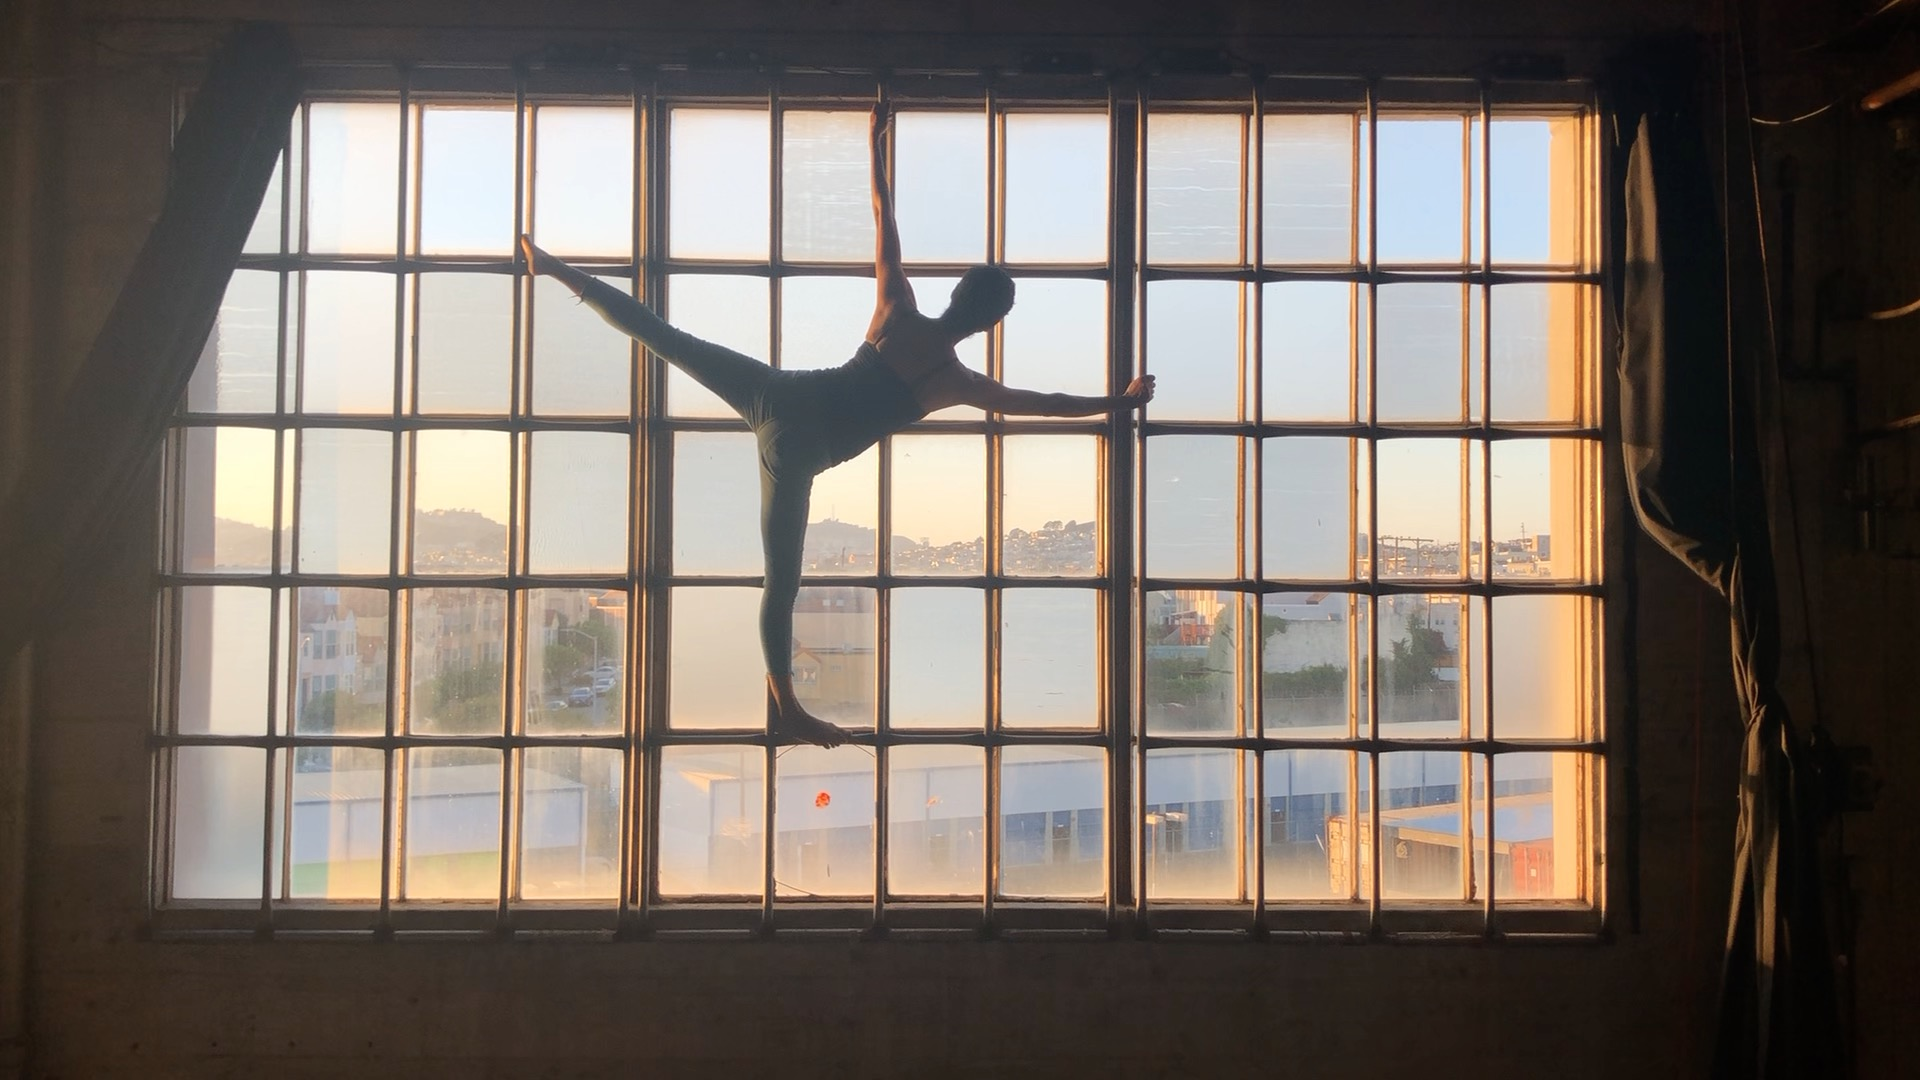 Color photograph of a multi-paned glass window with a person's silhouette in the middle of the frame who is standing on the right leg and outstretched in a posed position.